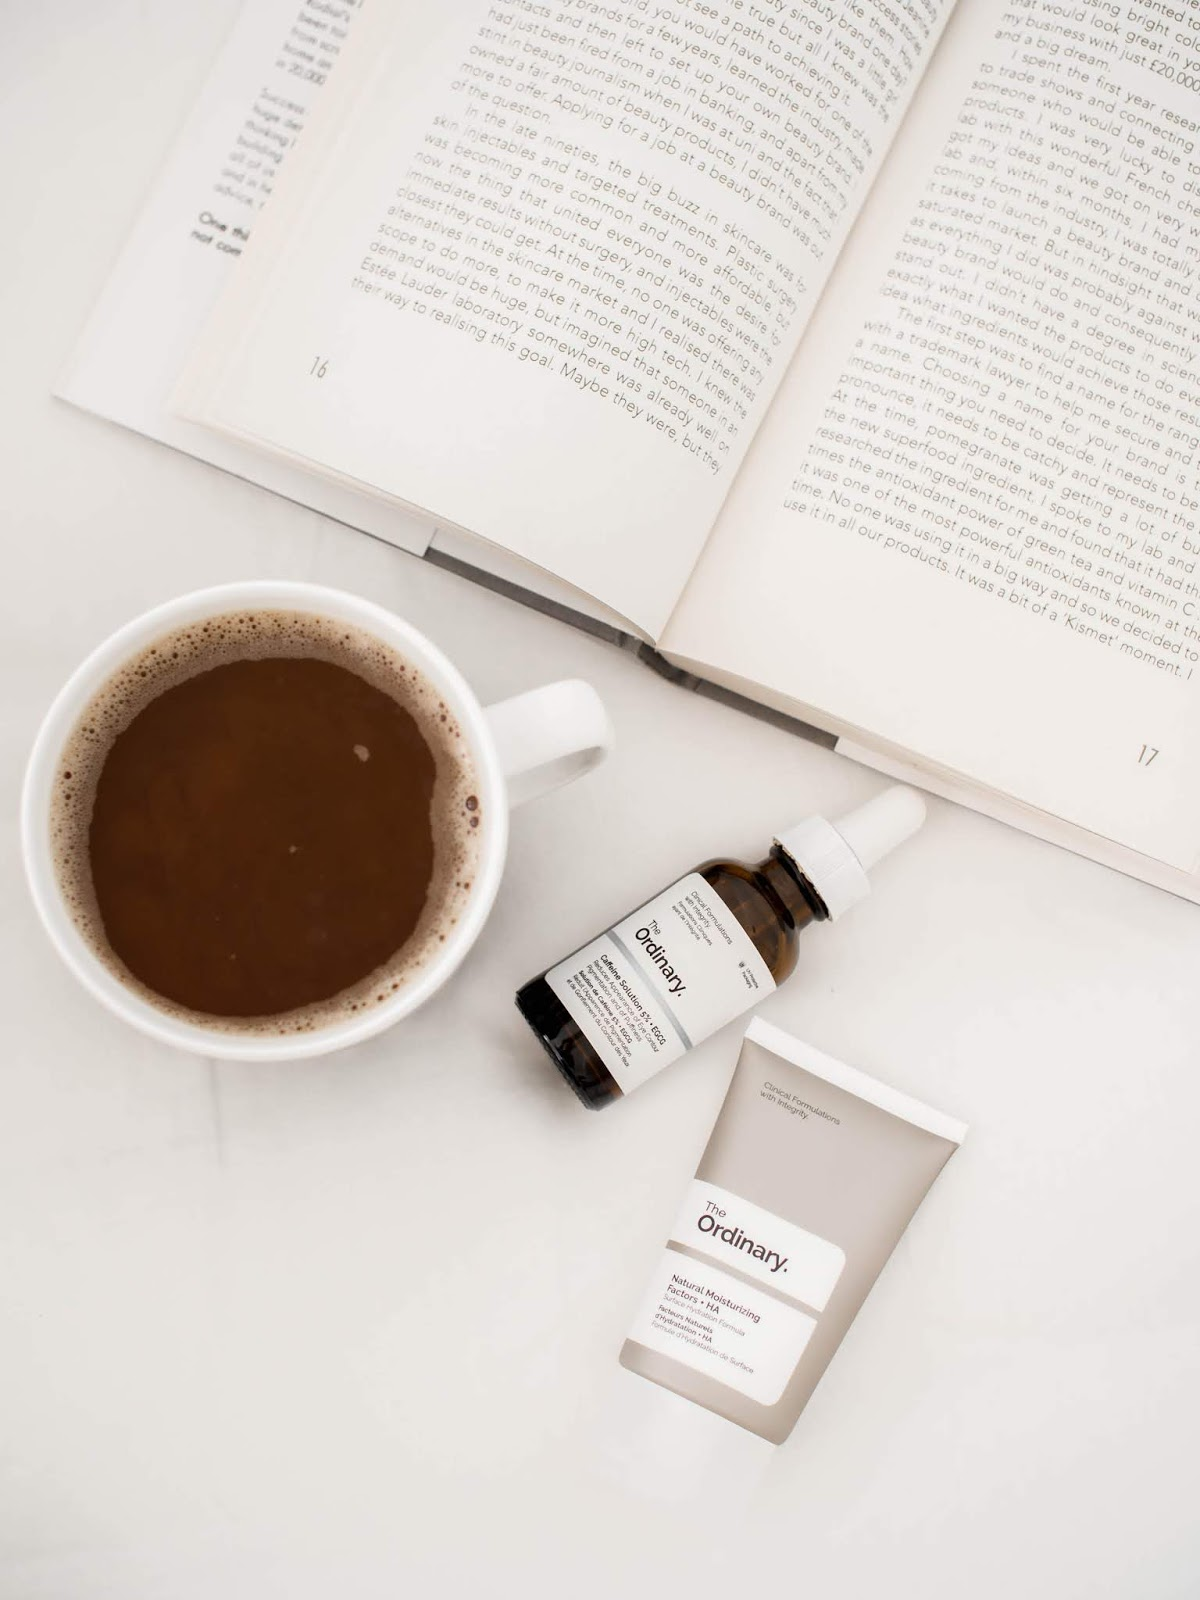 The Ordinary skincare products and coffee in Marimekko mug - The Ordinary ihonhoitotuotteet ja kahvi Marimekon mukissa